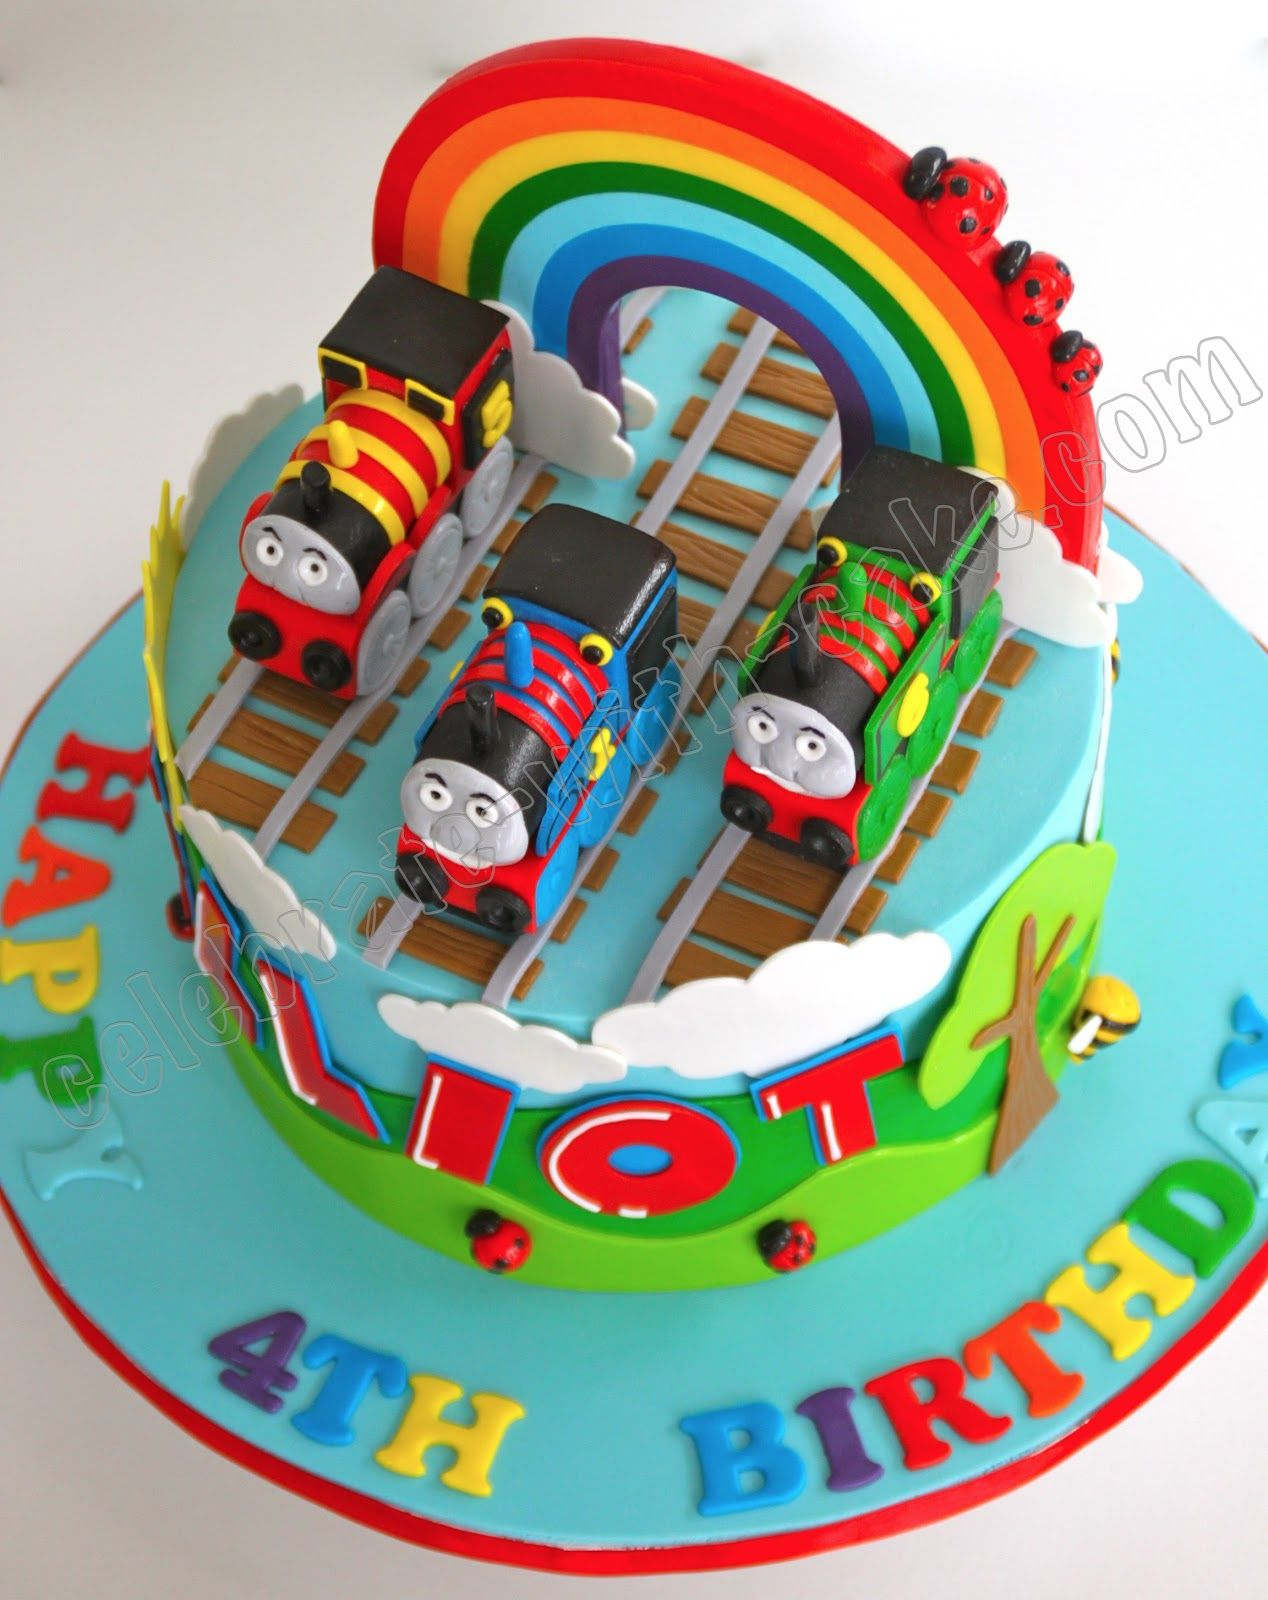 Celebrate With Cake Rainbow Thomas The Tank Engine Cake